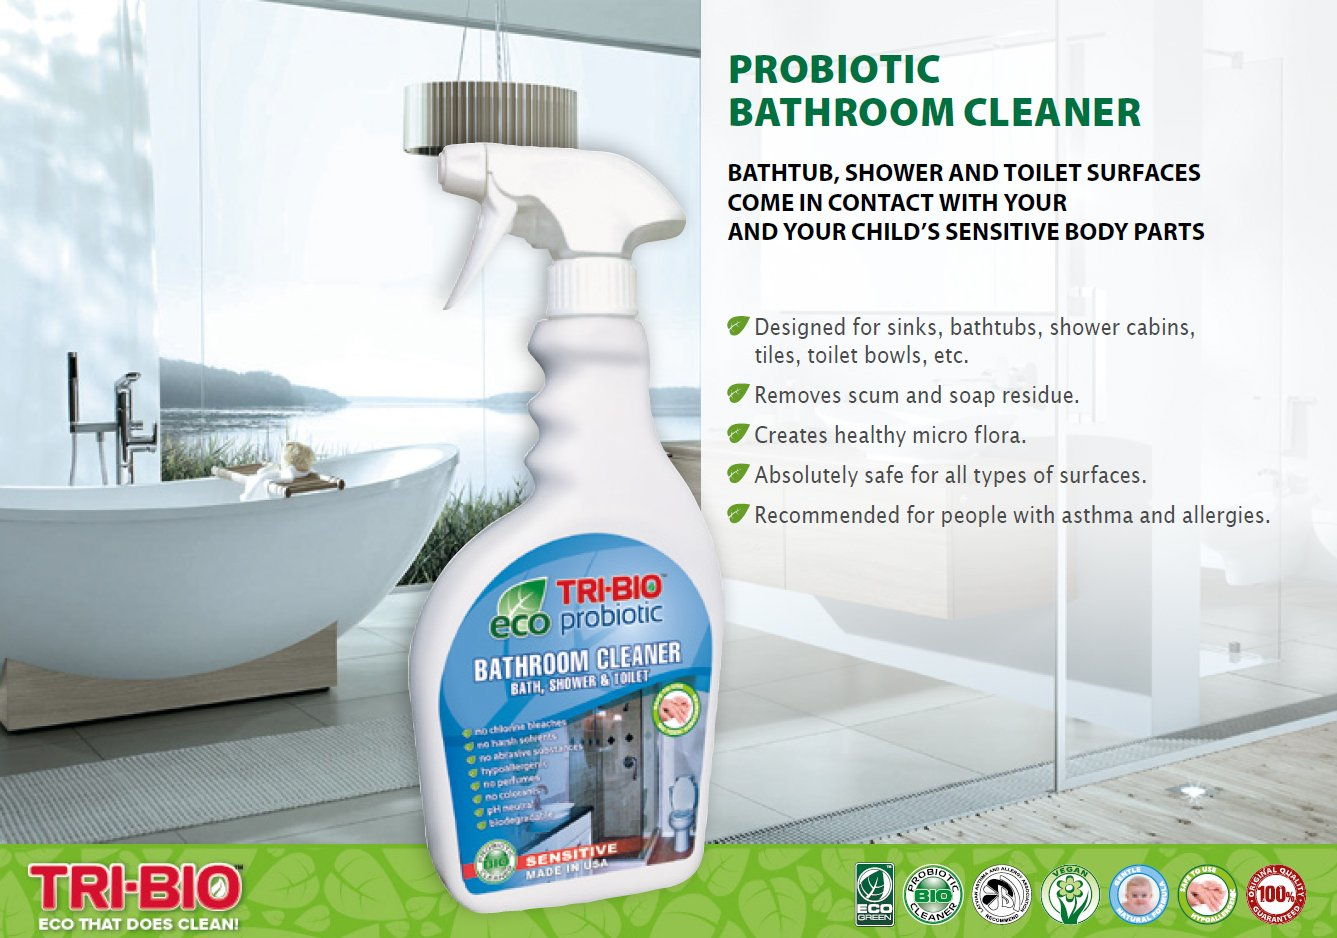 TriBio Probiotic Eco Bathroom Shower And Toilet Cleaner Spray - Safe bathroom cleaner